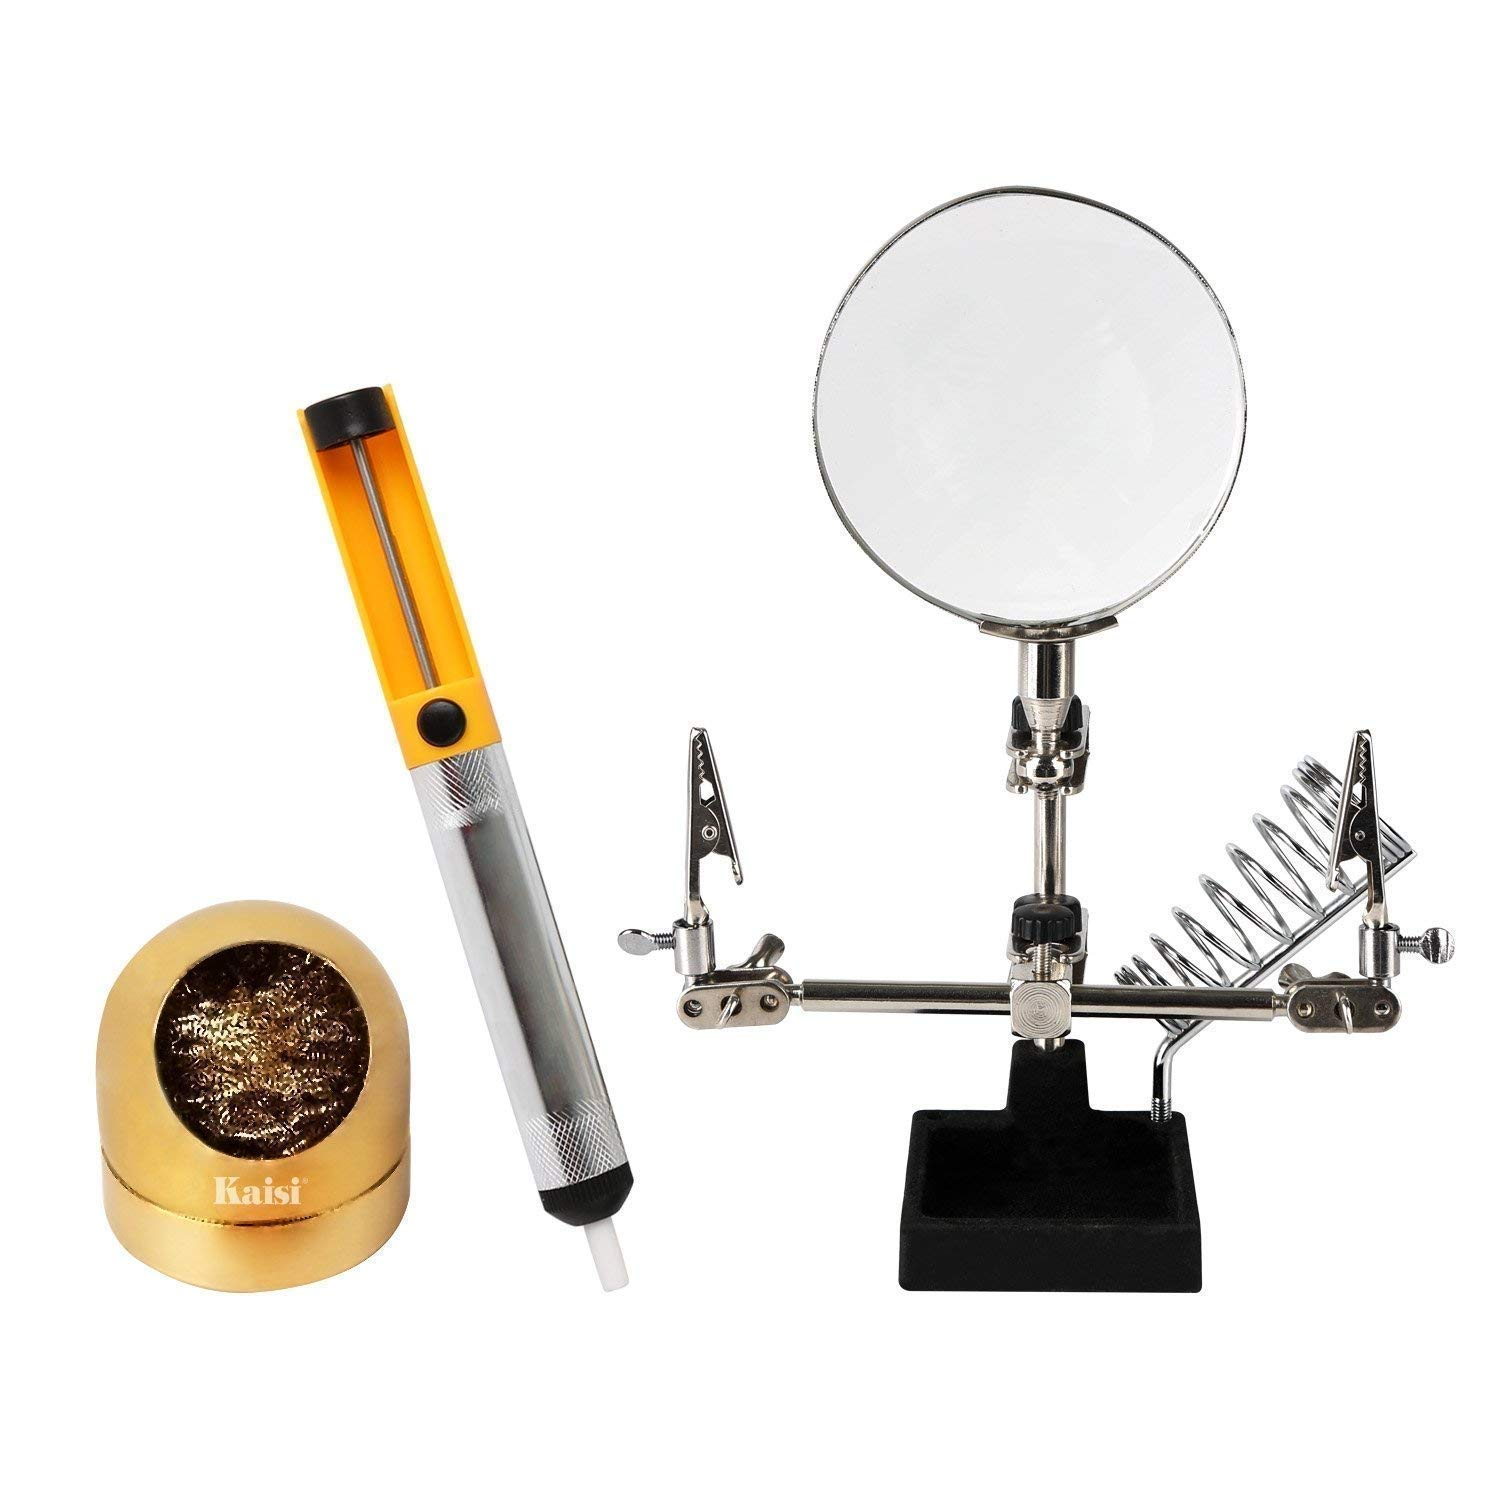 Soldering Tools 3 in 1 Helping Hand Station with Magnifying Glass Desoldering Pump and Soldering Tip Cleaner Soft Brass Ball Wire, Soldering Tools for Electronics, Iron, Craft Projects and Hobby etc